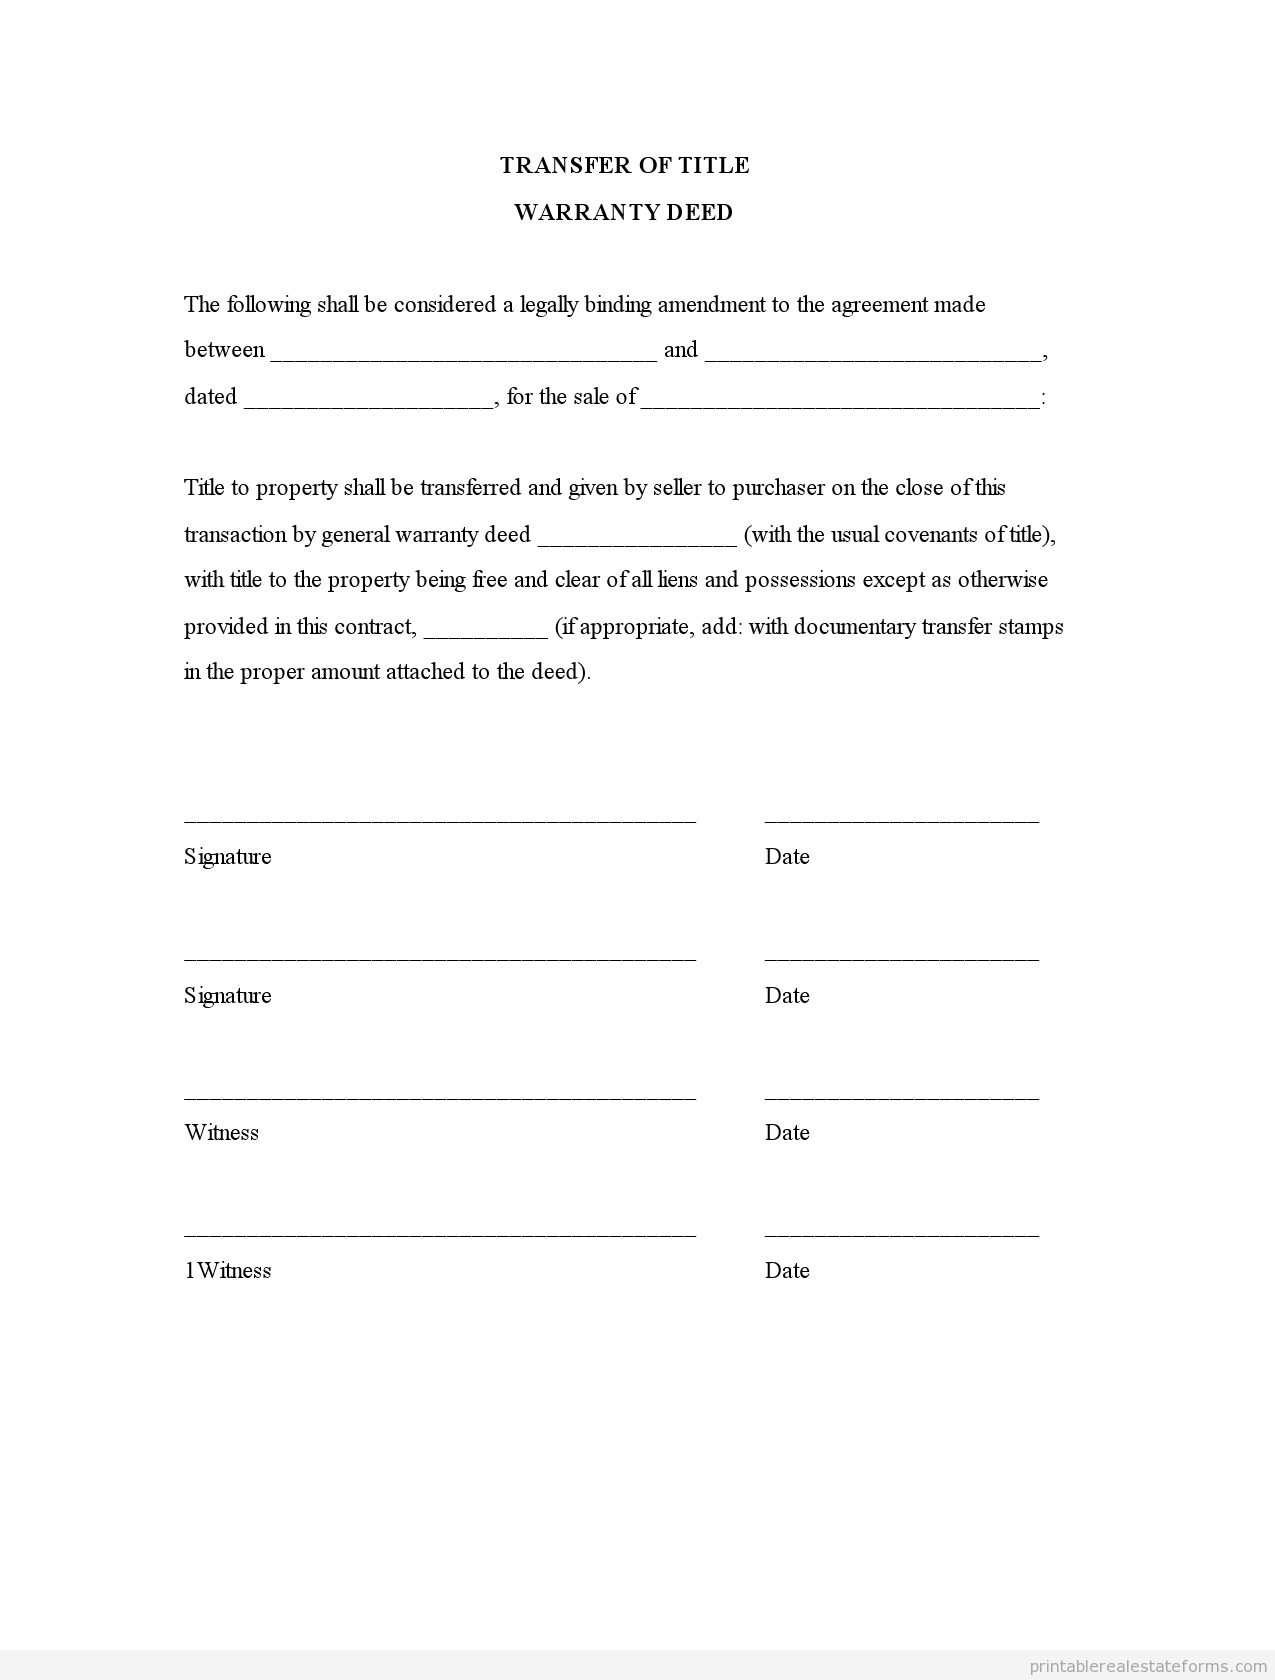 Printable transfer of title warranty deed template 2015 – Warranty Deed Form Template